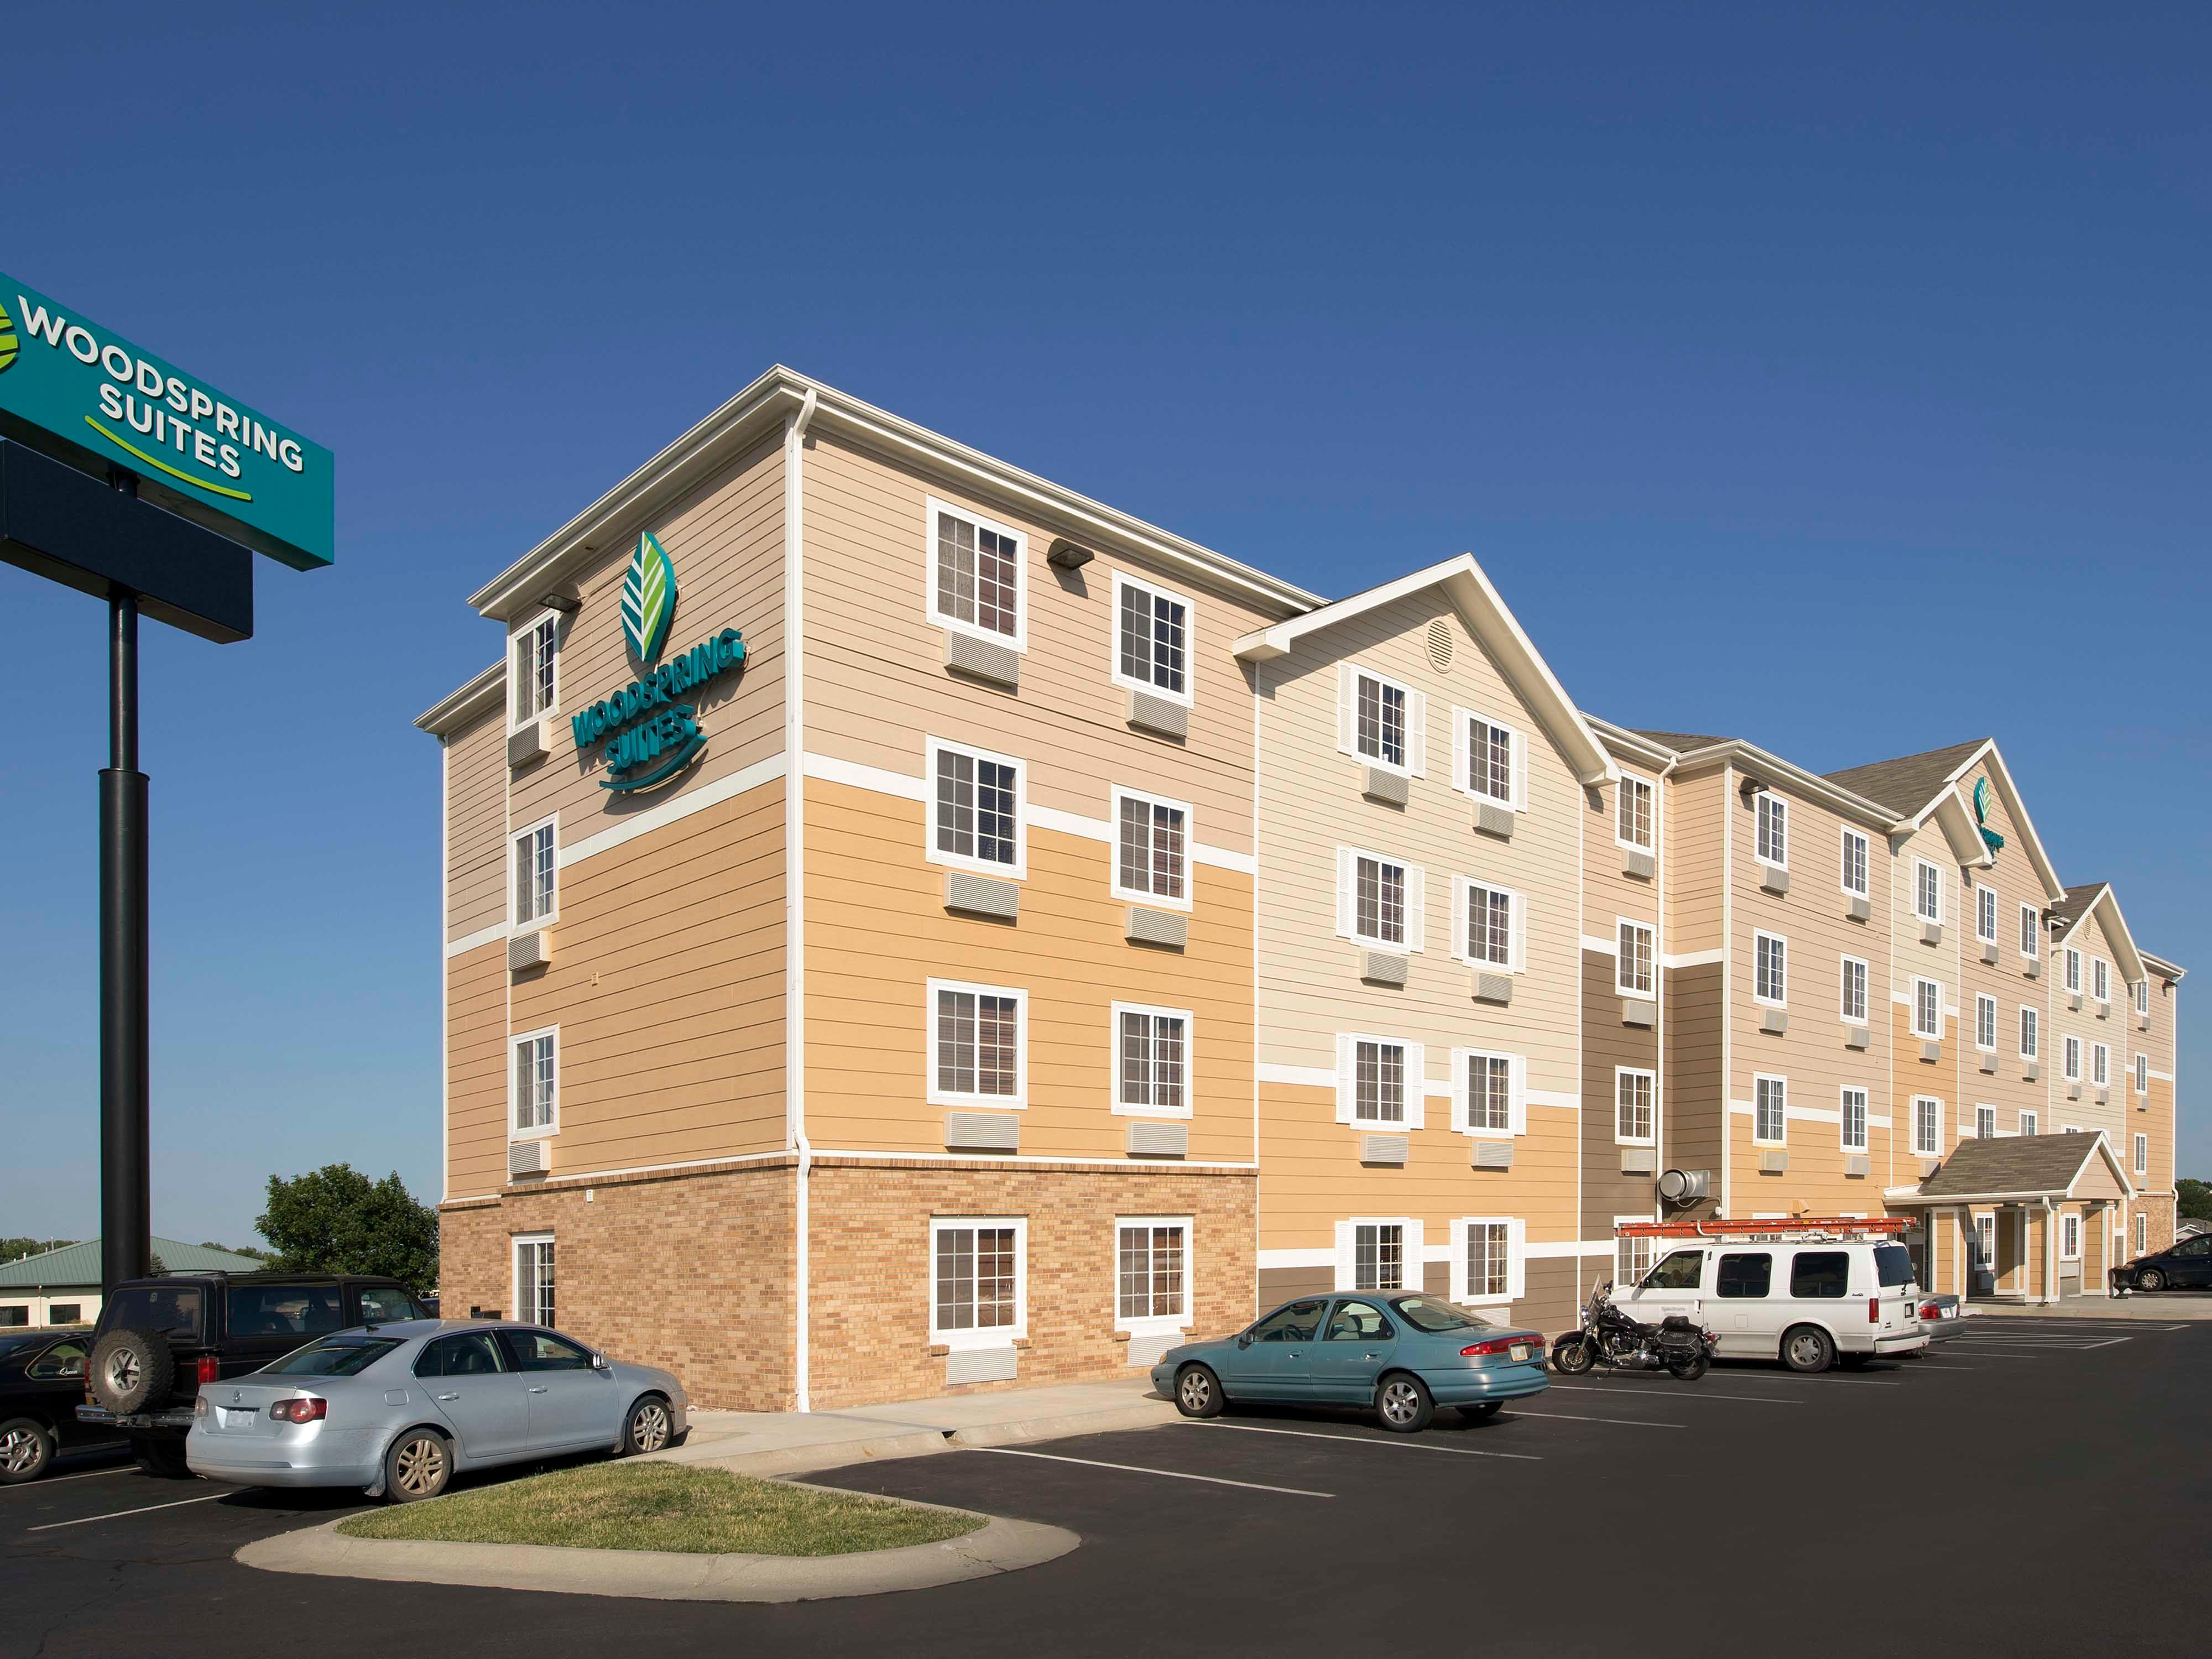 Find Residence Inn Secaucus Meadowlands maps, contact information, property details and more.